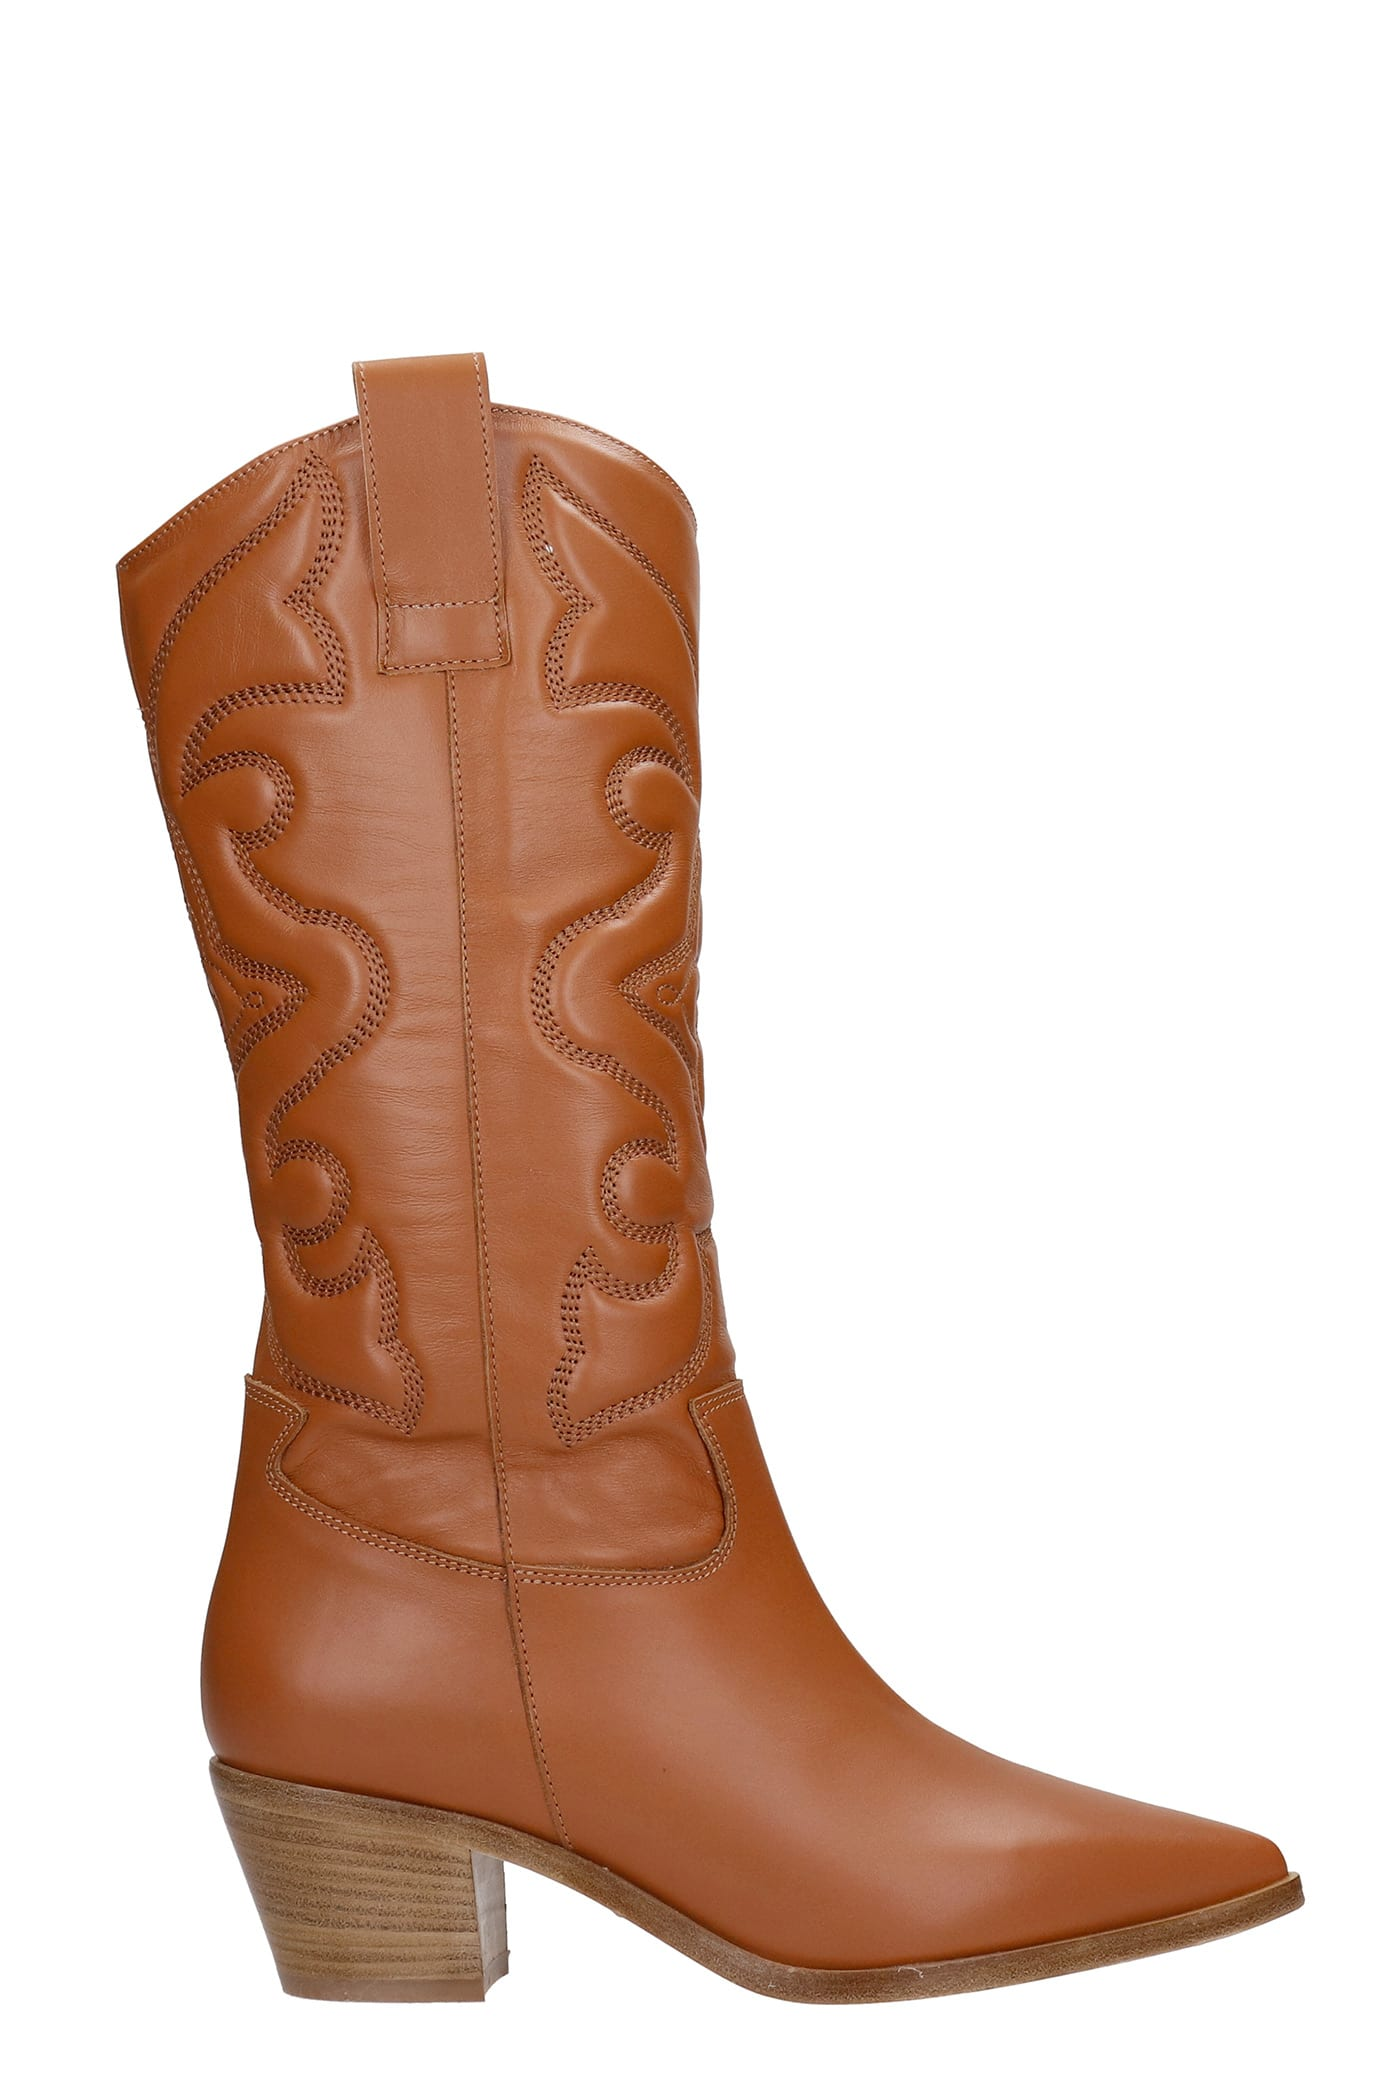 Texan Boots In Leather Color Leather